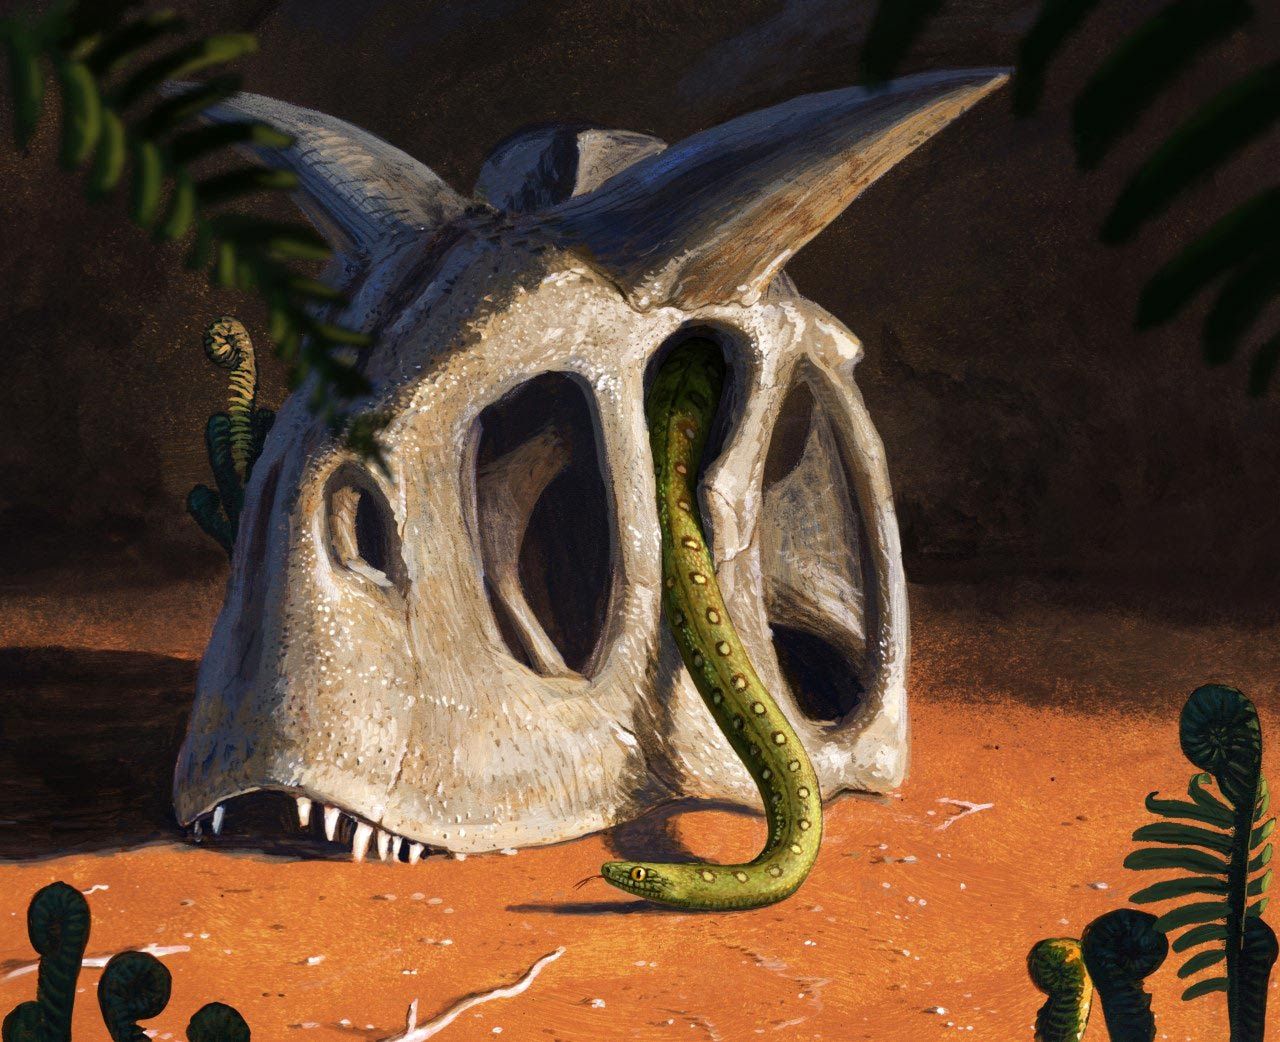 All Living Snakes Evolved From a Few Survivors of Asteroid That Killed the Dinosaurs